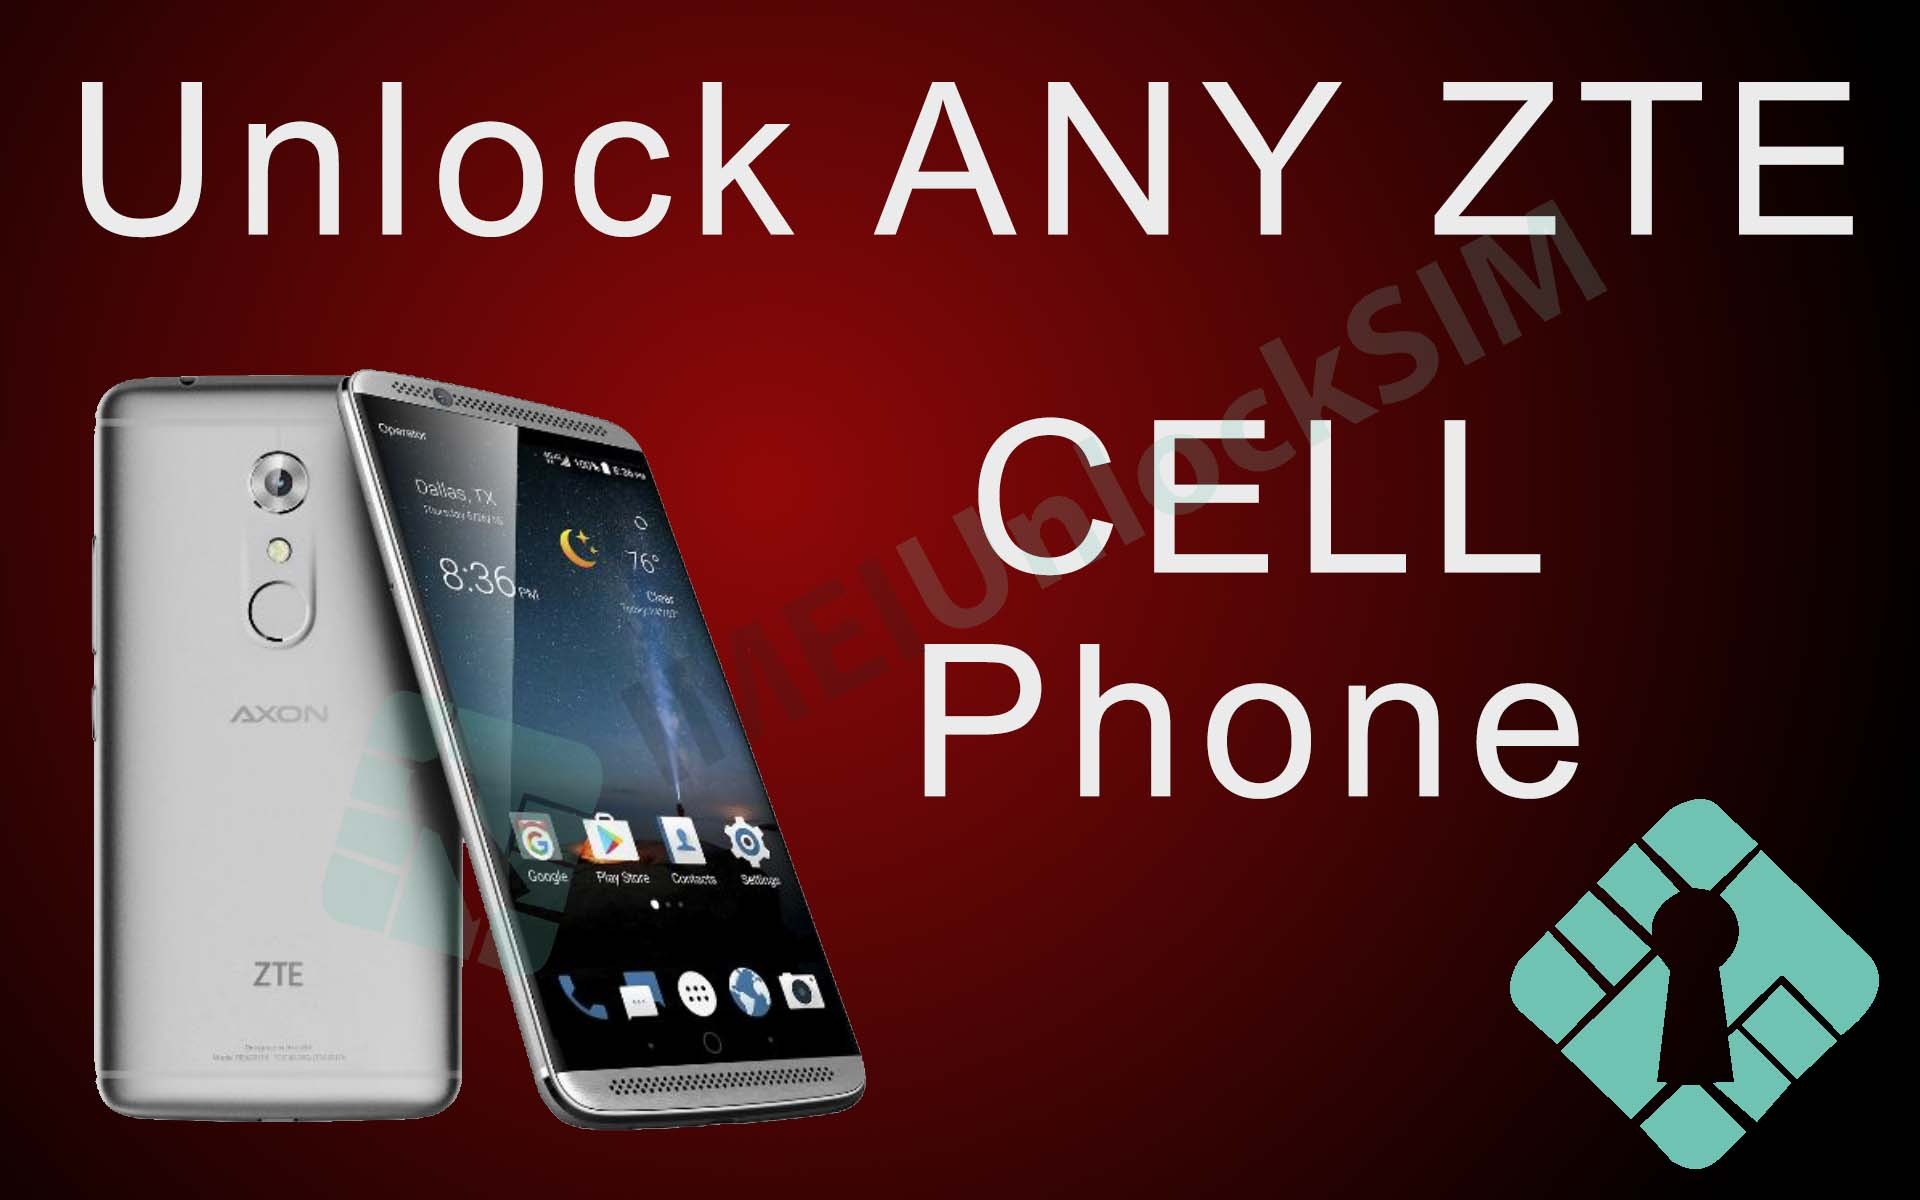 Unlock ZTE Cell Phone by IMEI Code on ANY Carrier Network